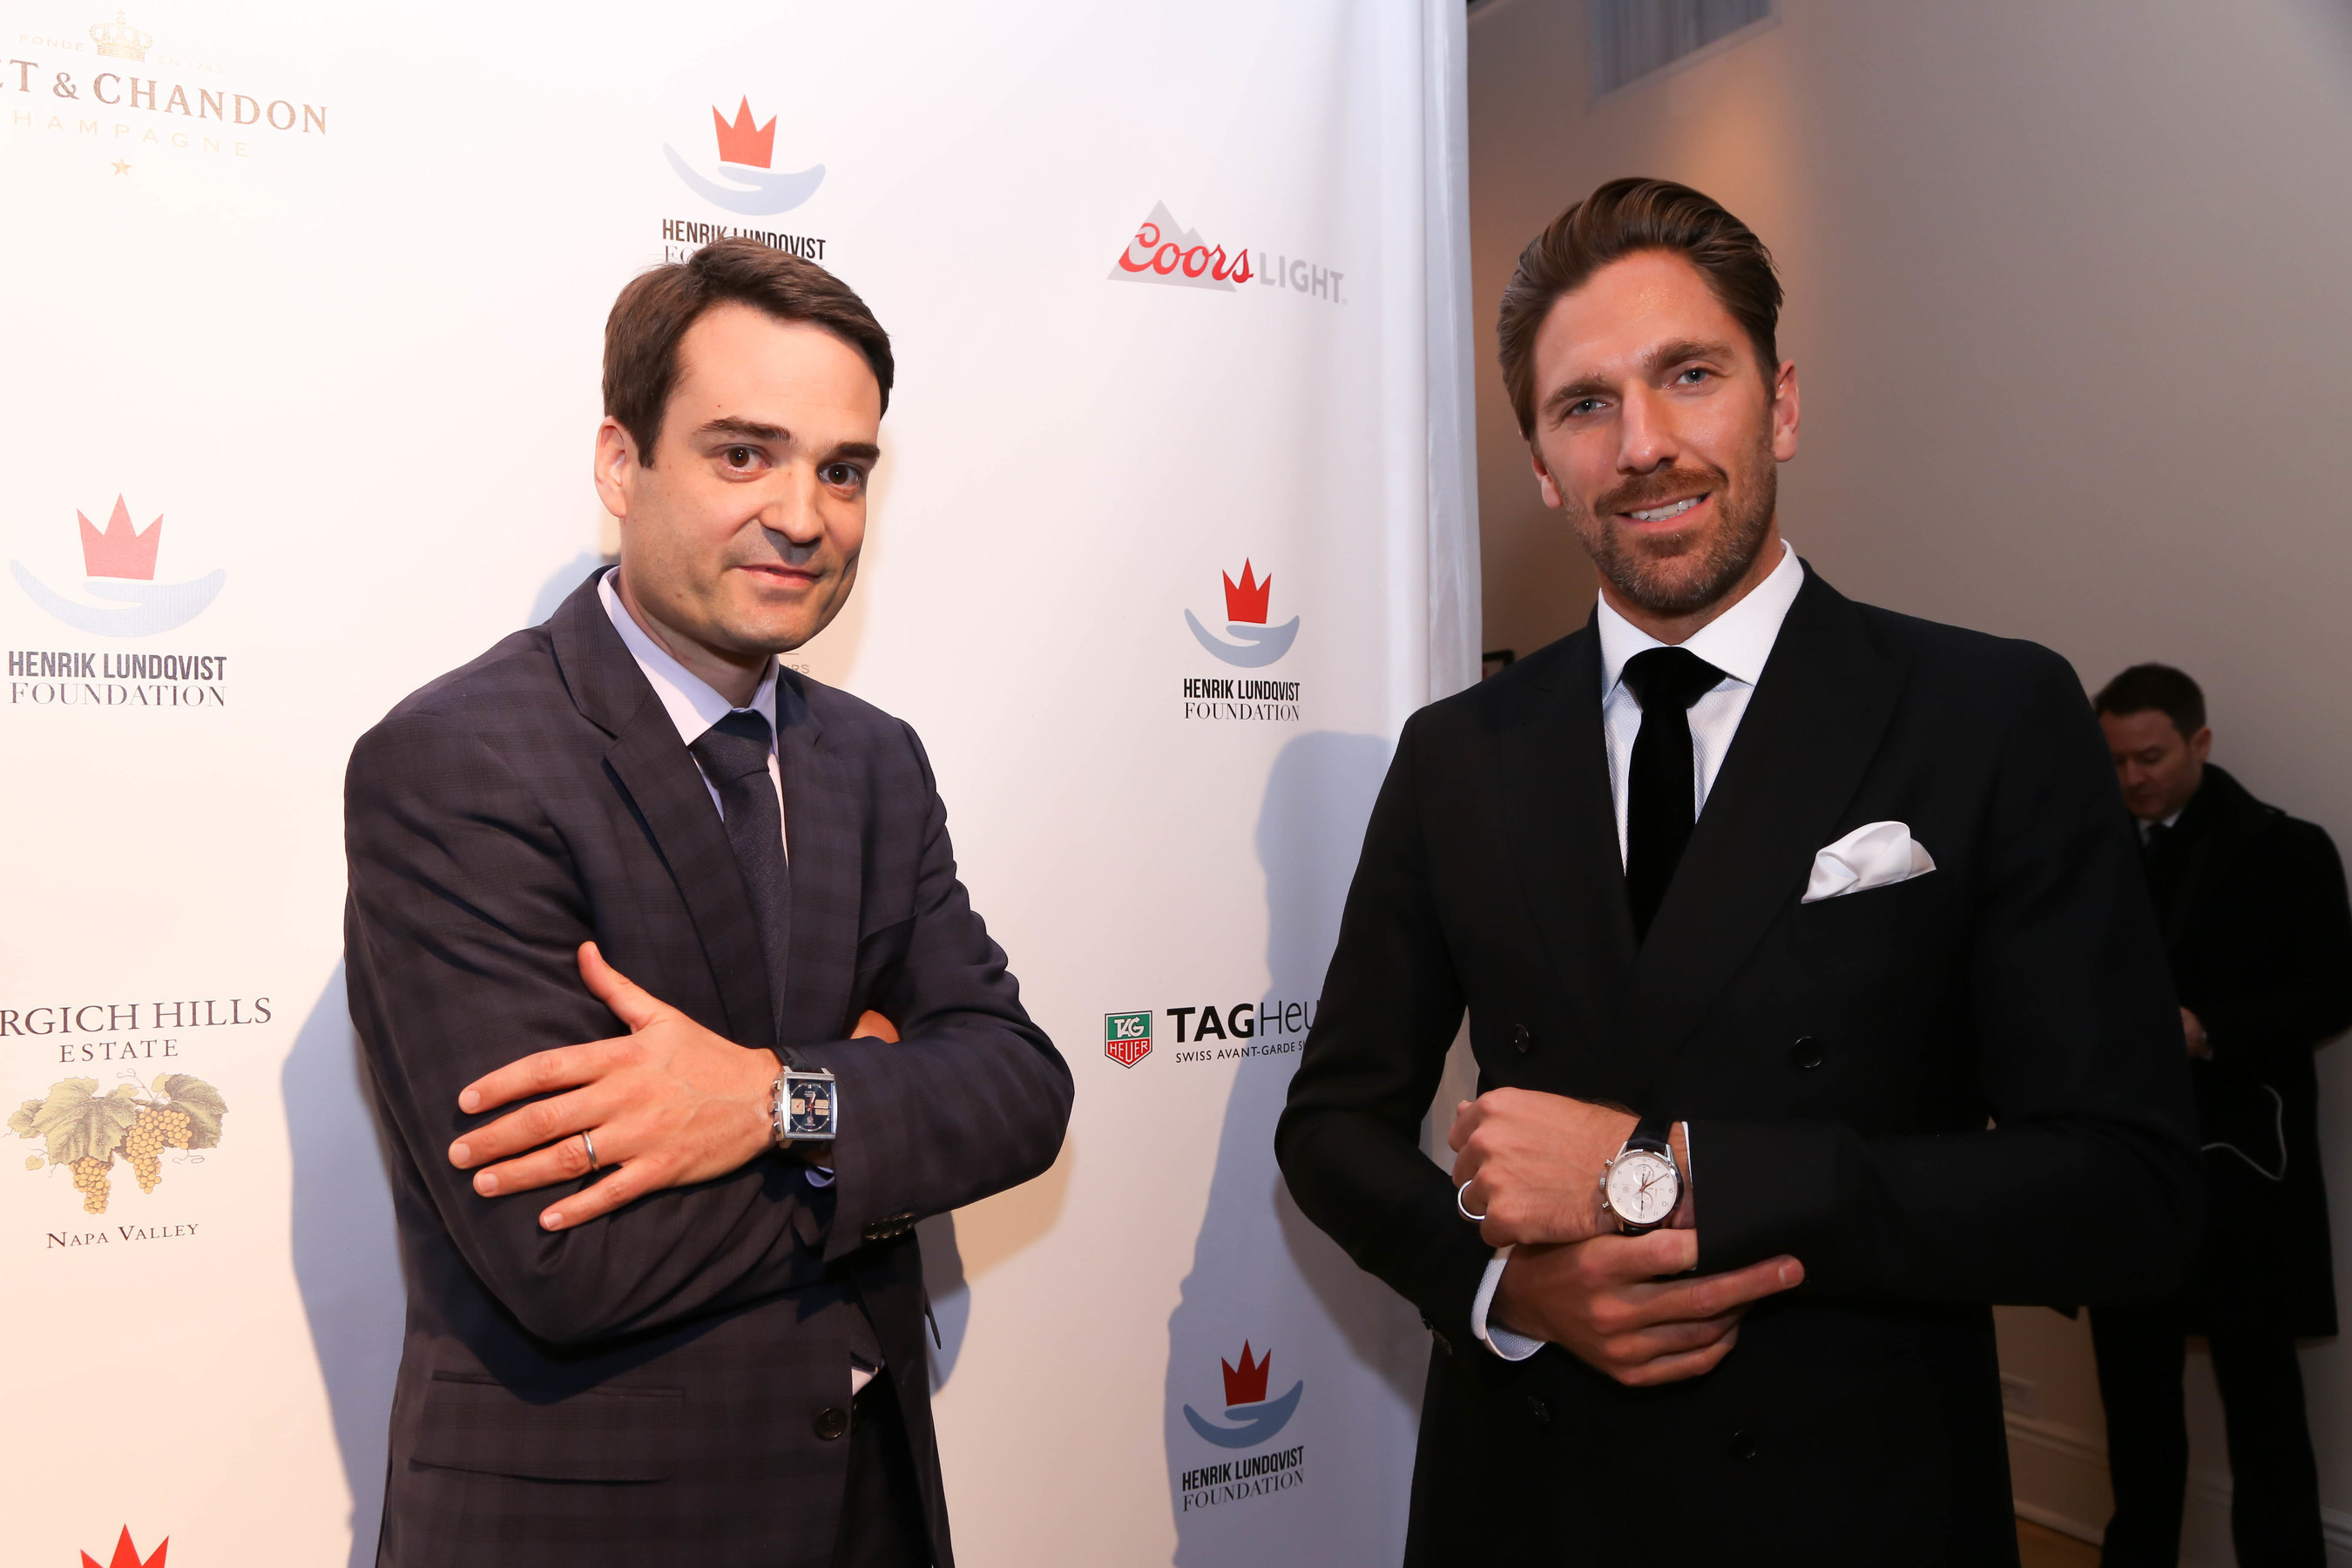 Henrik Lundqvist Now In Goal For Tag Heuer